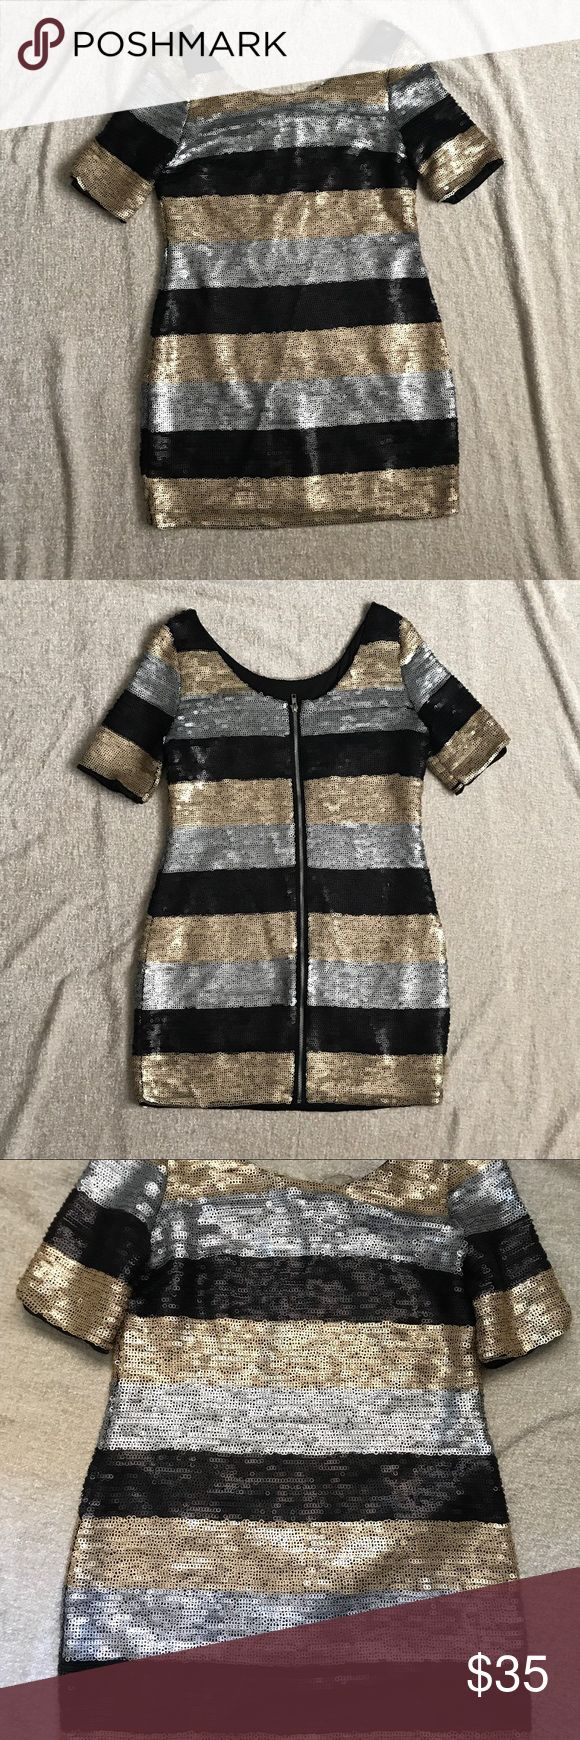 Shimmer gold, black, and silver dress Zip front down the whole back. This is a very unique and fun dress. Block gold, black, and silver stripes running horizontally. Runs big, I would suggest ordering a size smaller than you'd normally get. Dresses